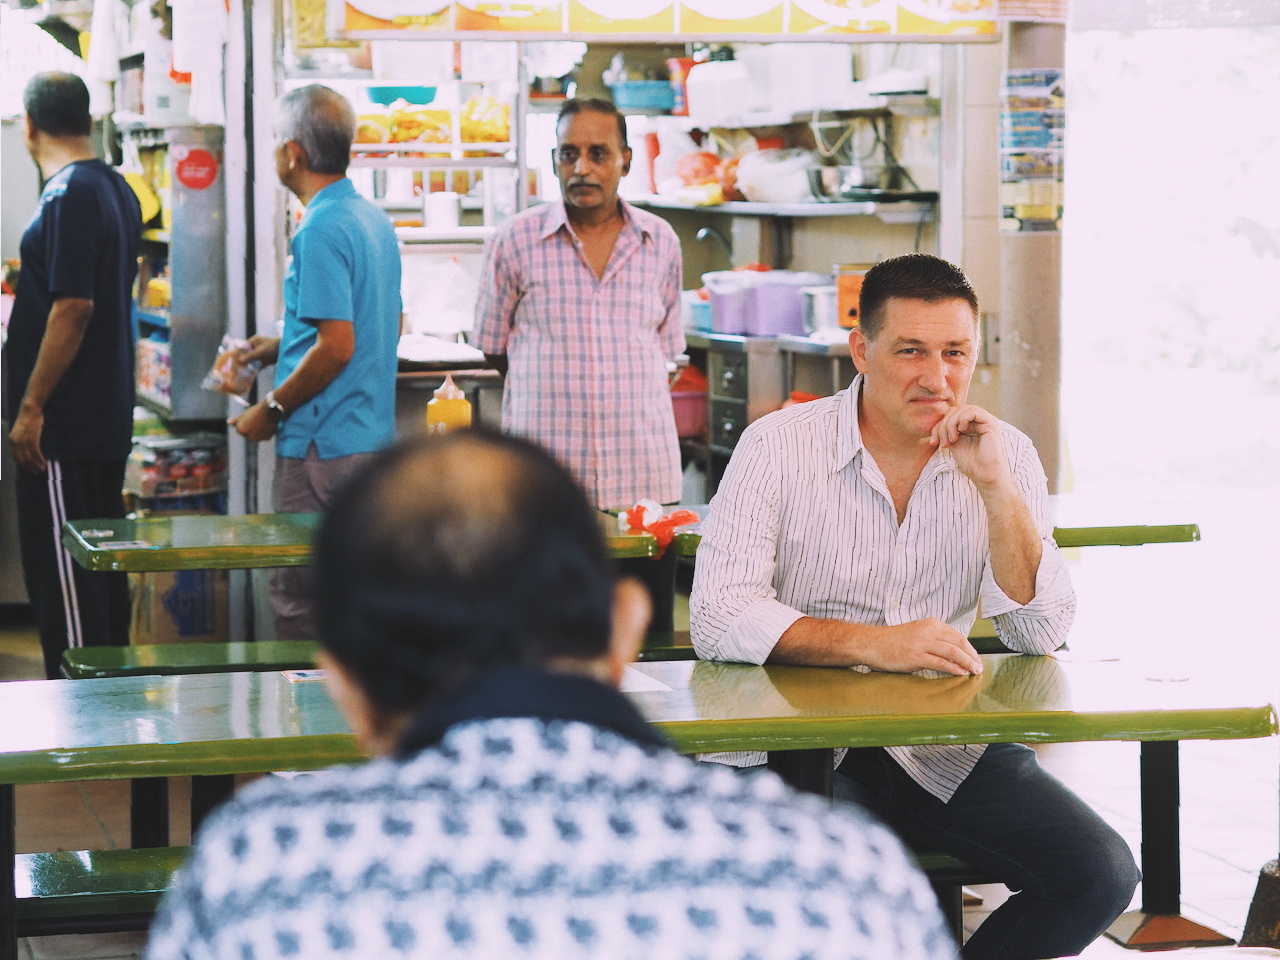 Brad Bowyer Wants to Help. But Can an Ang Moh Politician Succeed in Singapore?